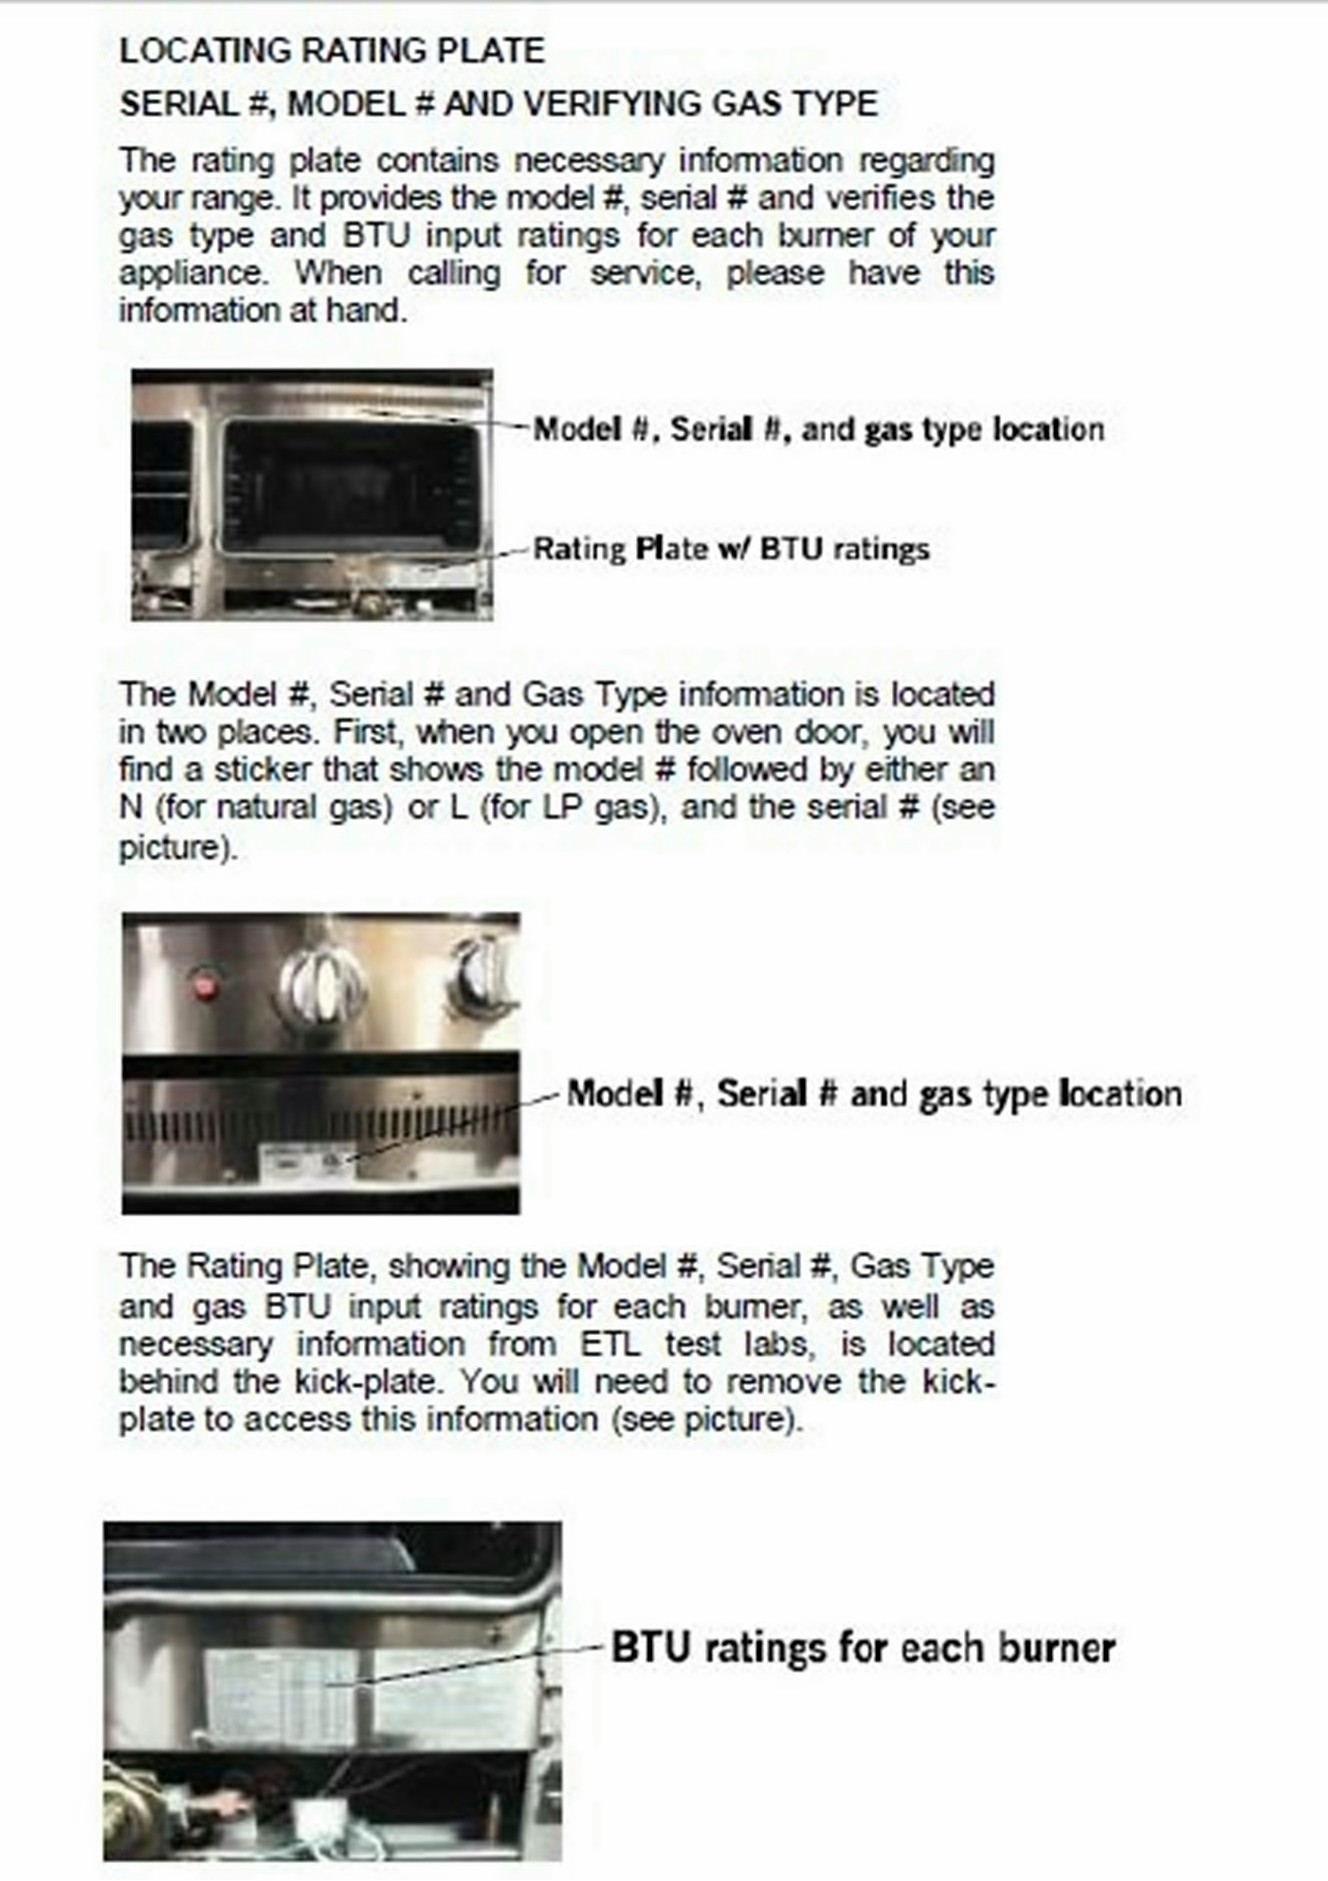 Bertazzoni serial number location in florida